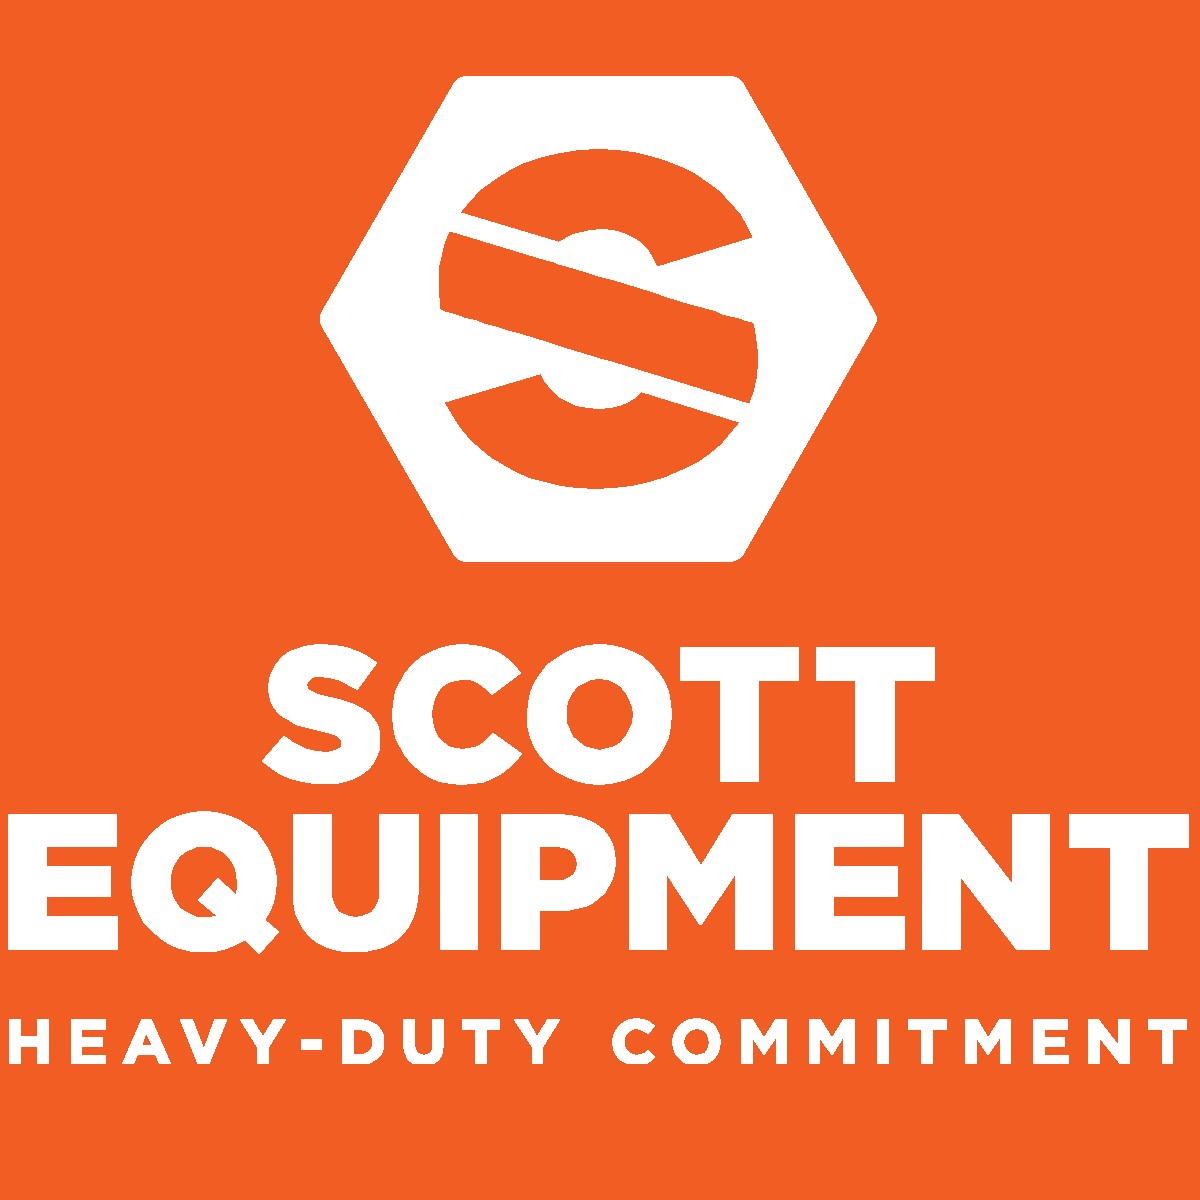 Scott Equipment Co.